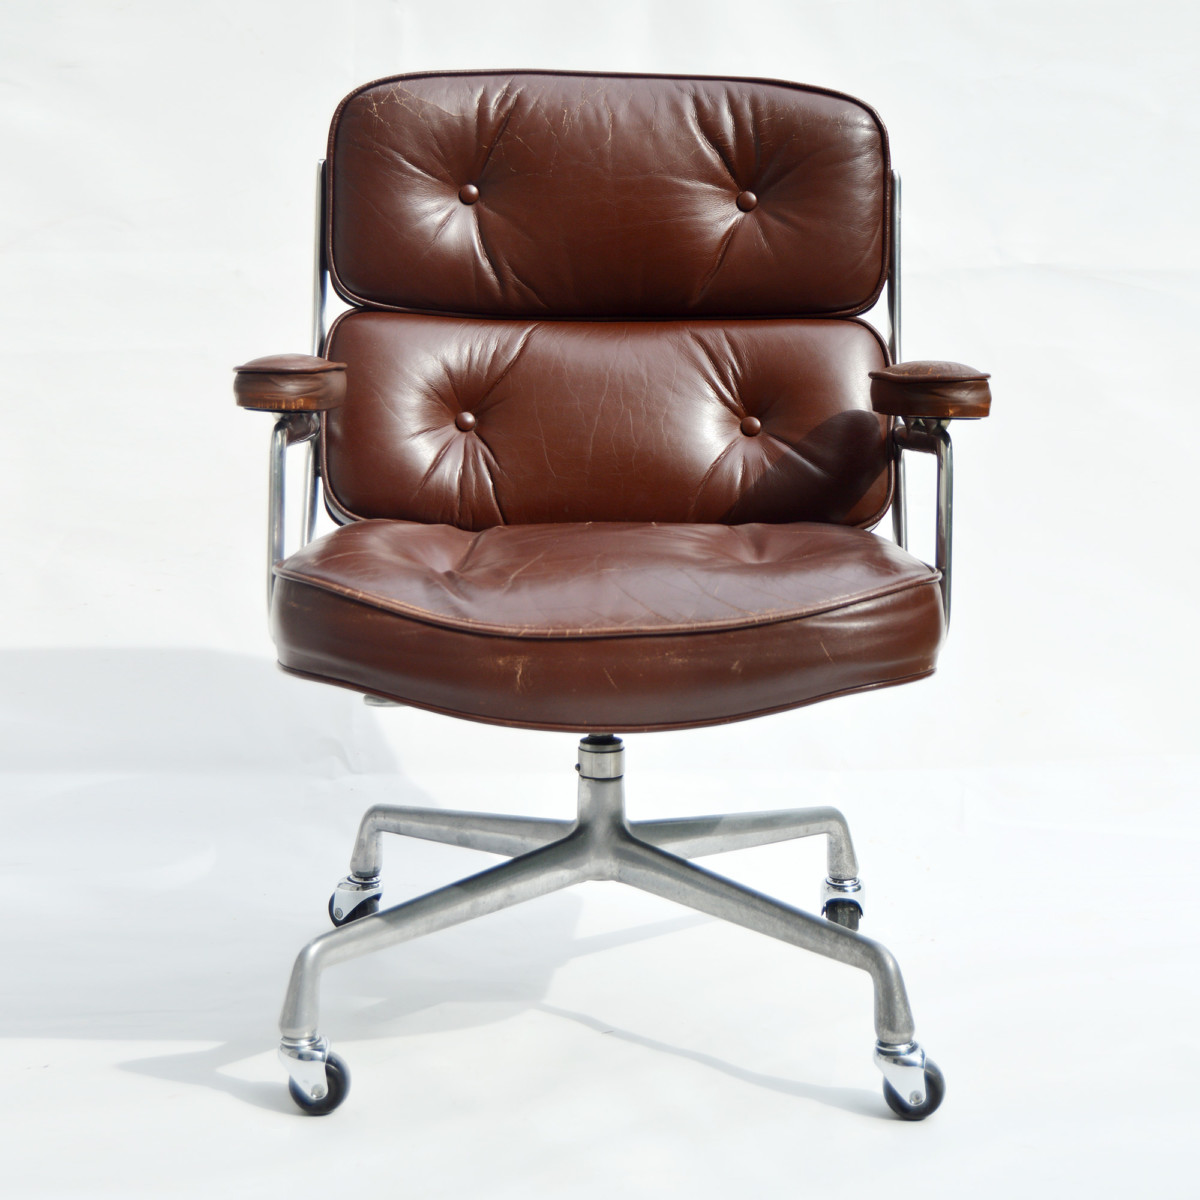 vintage eames lobby chair es104 by herman miller 1970. Black Bedroom Furniture Sets. Home Design Ideas